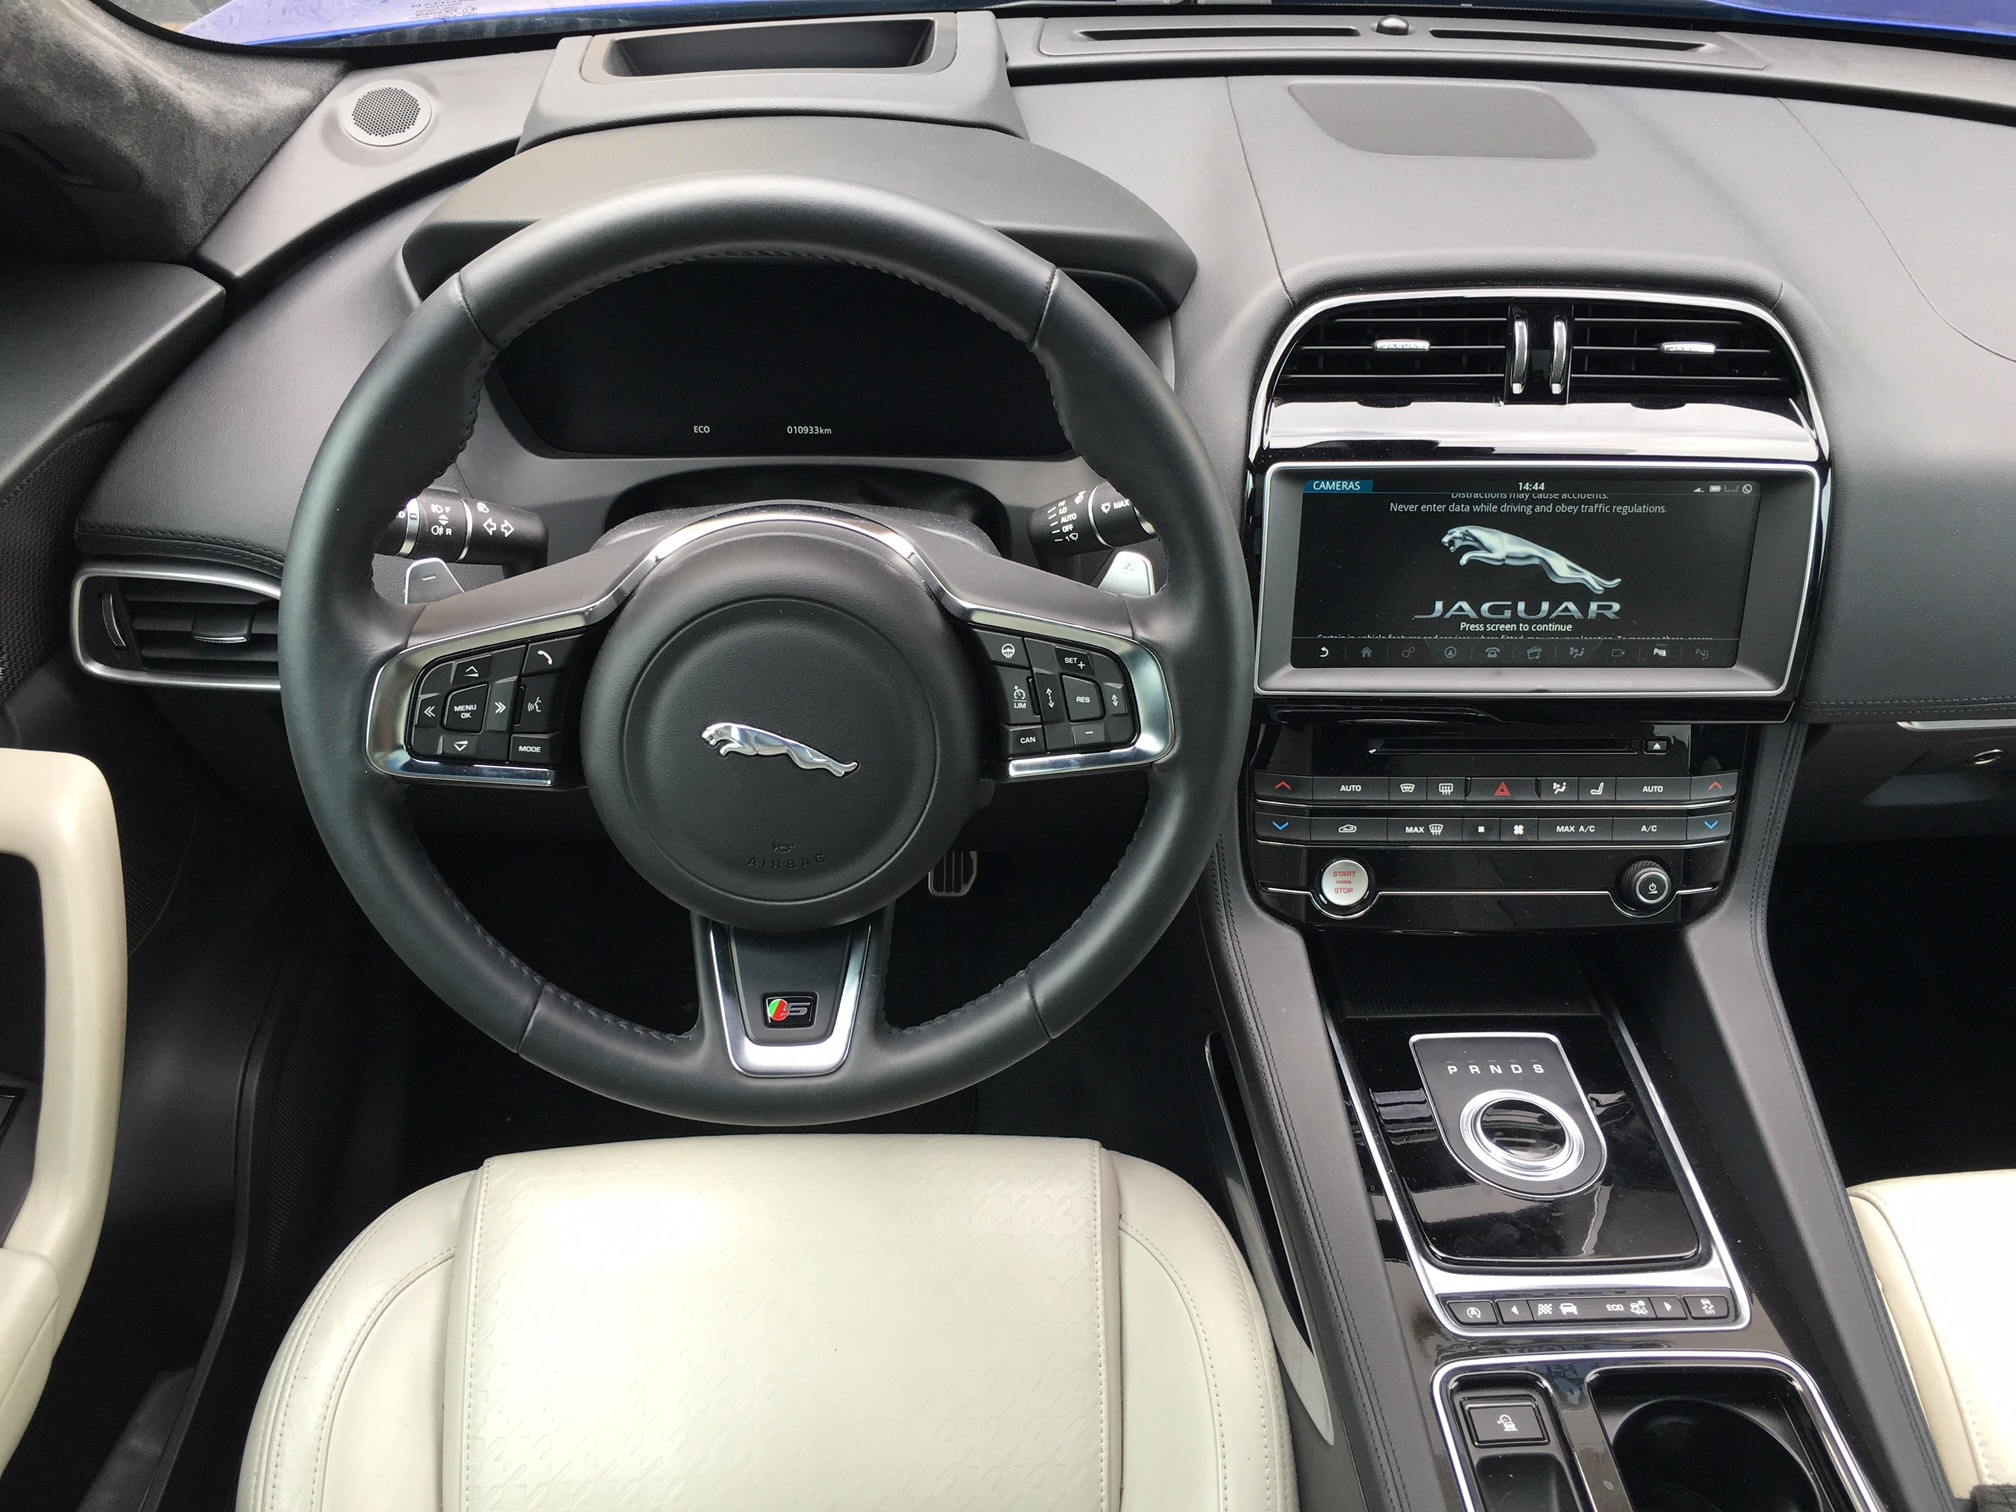 First Team Toyota >> 2016-jaguar-f-pace-interior | Canadian Car Reviews | Driving Television